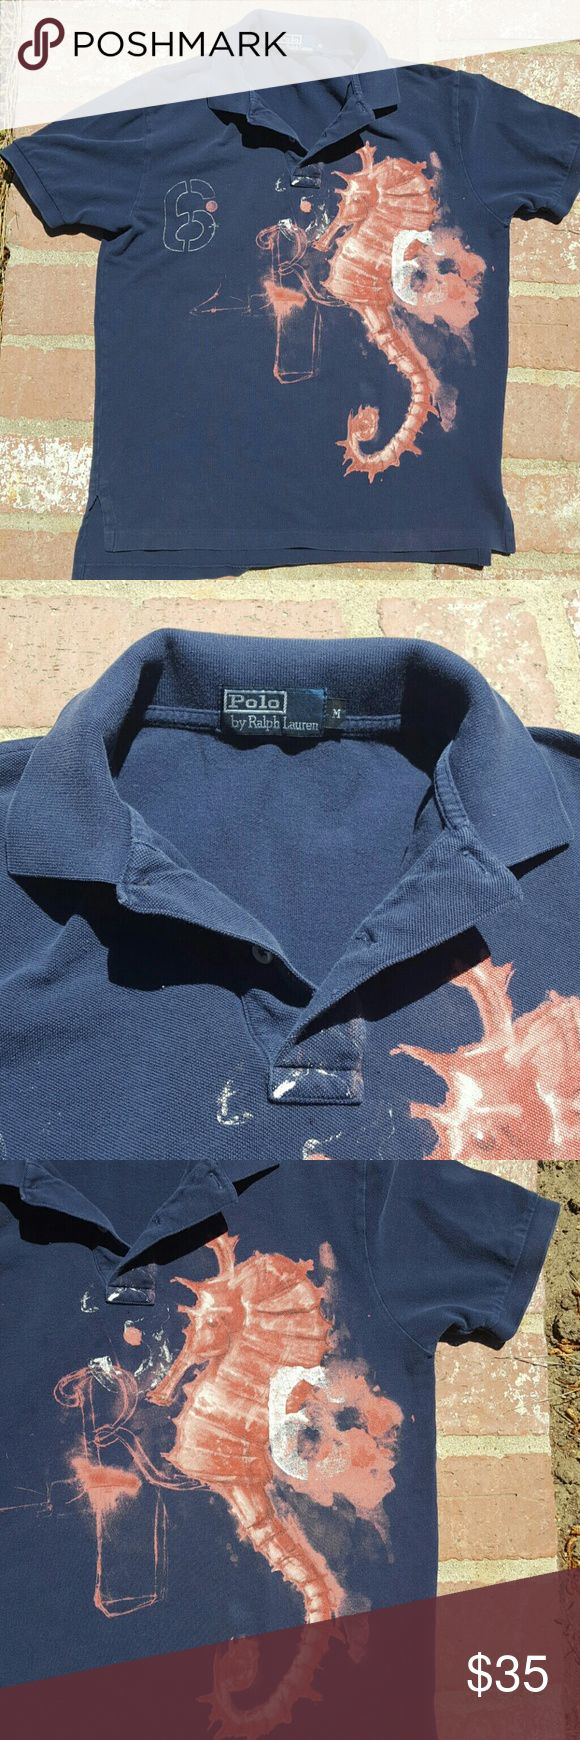 Ralph Lauren Polo Shirt Ralp Lauren Polo Shirt with Sea Horse ... really cool style I love this one for summer with a really cool jean shorts and flip flops . A great look for an Island trip ... Ralph Lauren Shirts Tees - Short Sleeve